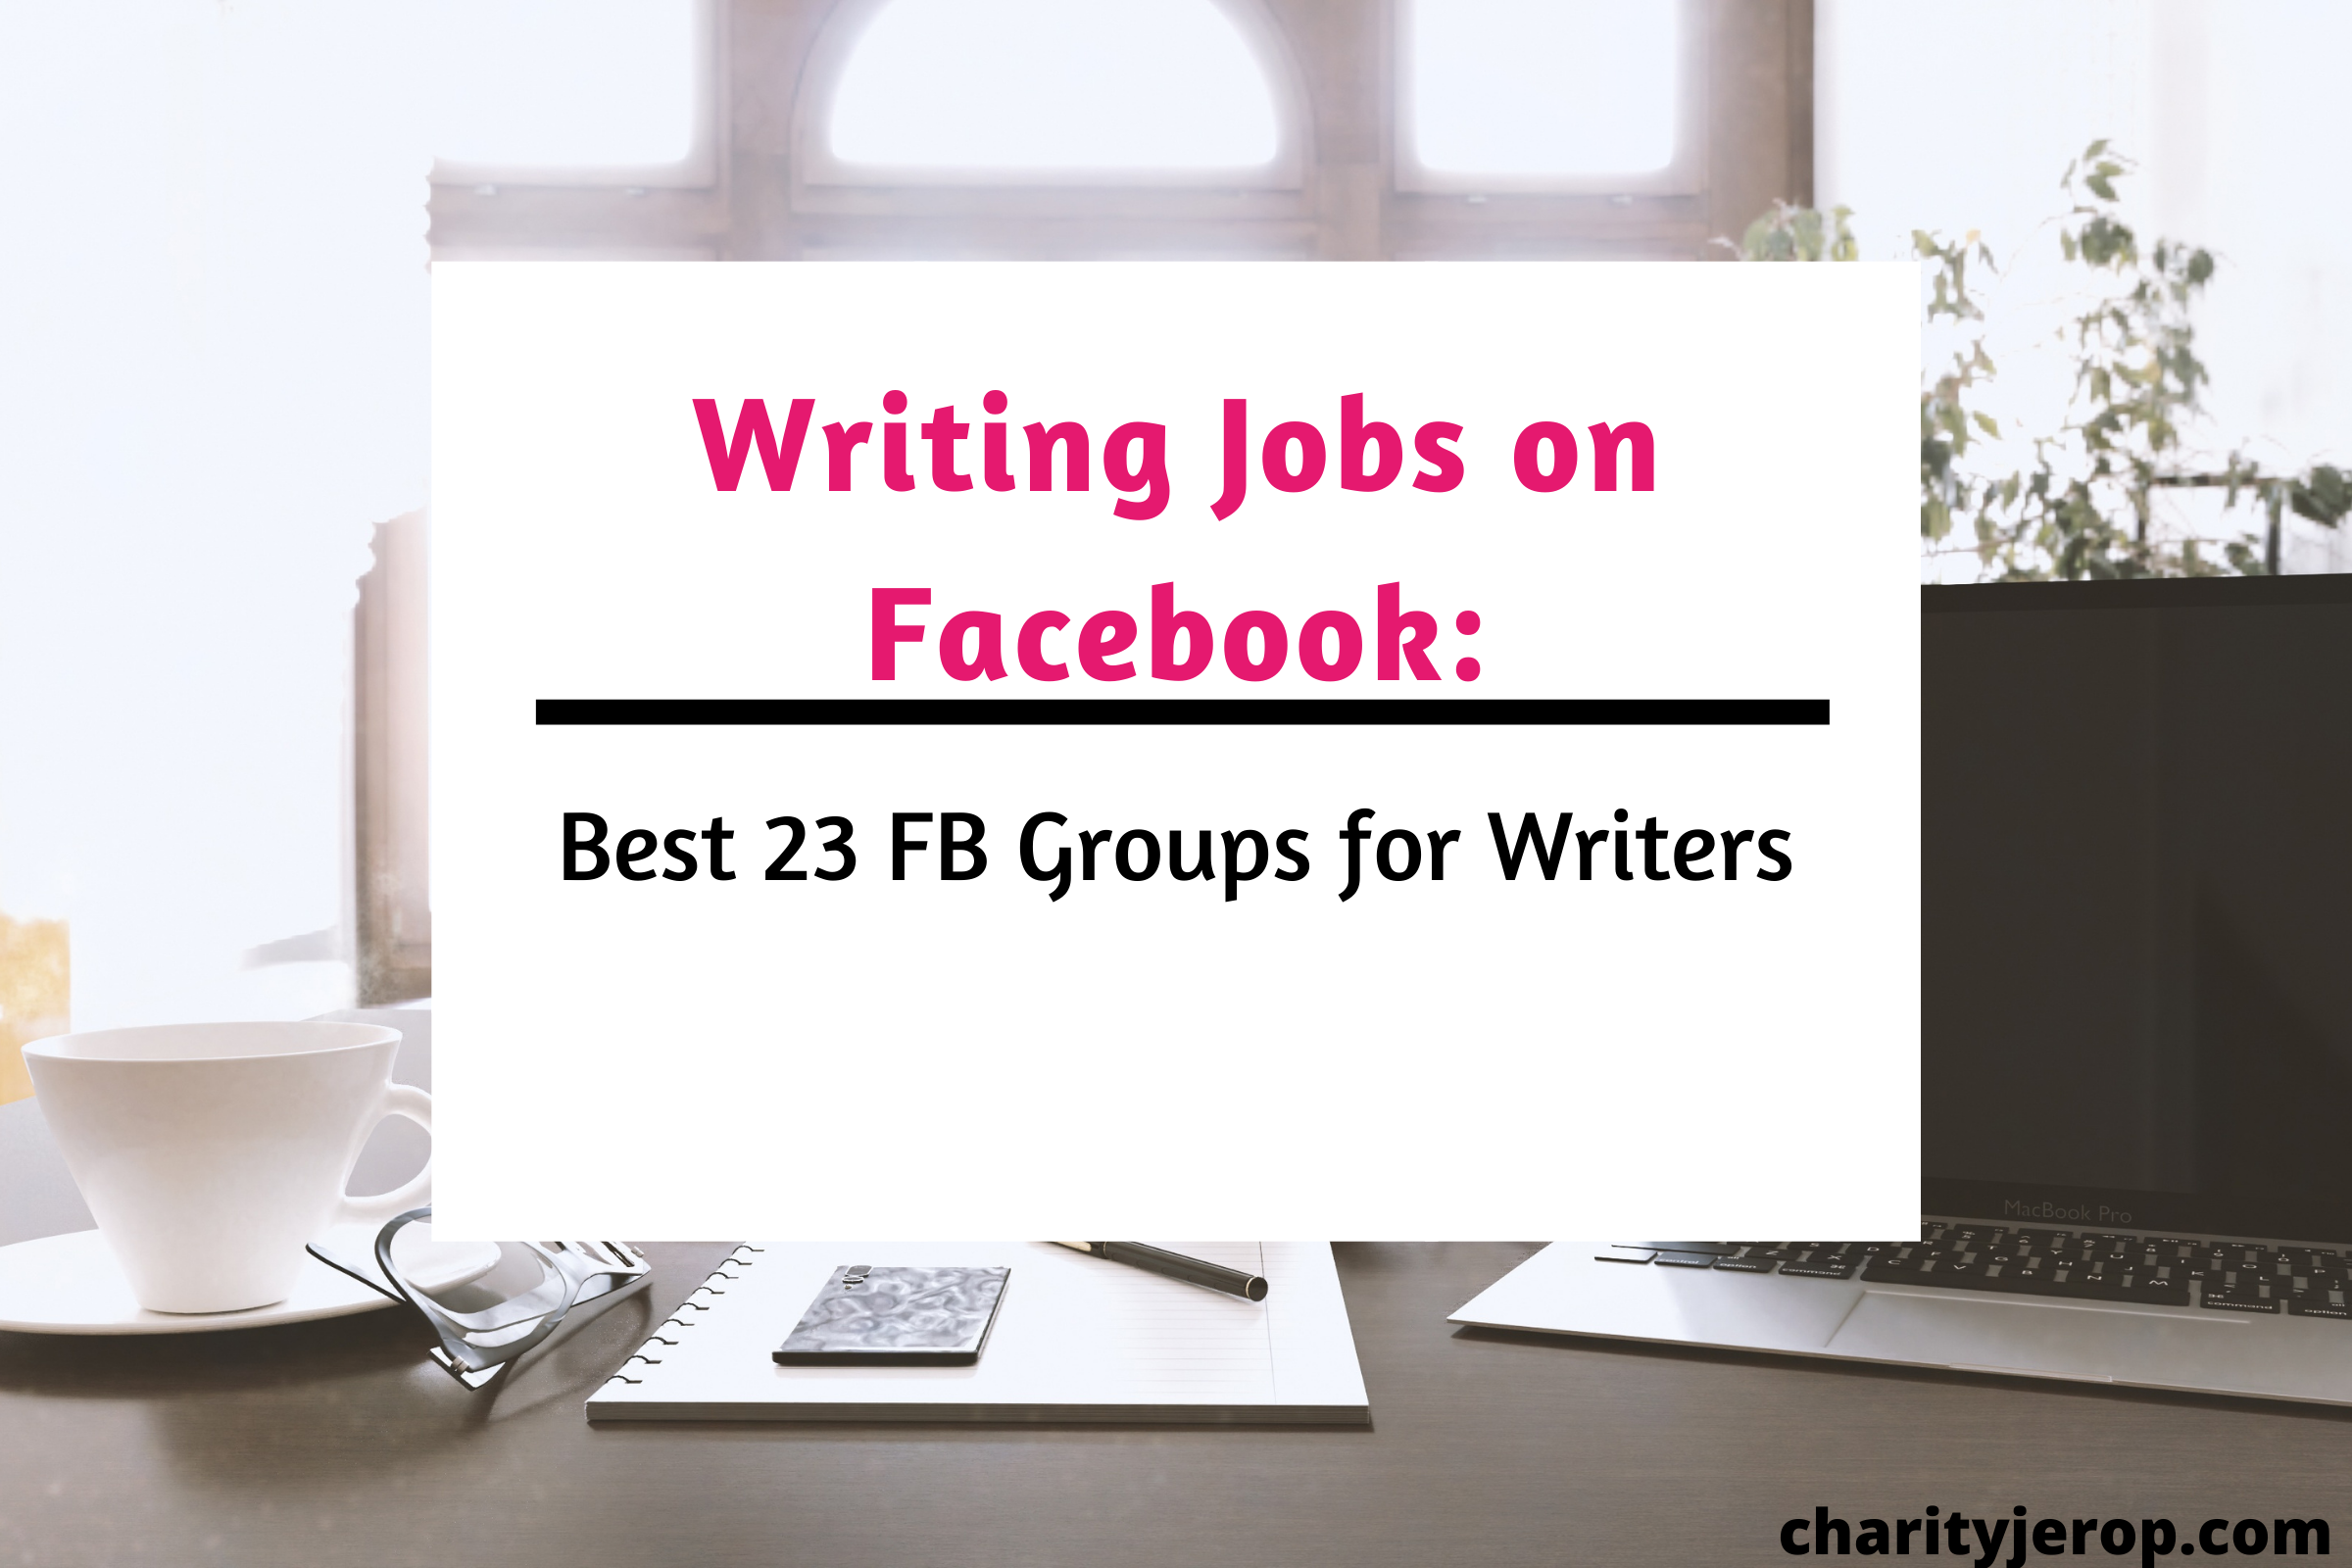 Writing jobs on Facebook